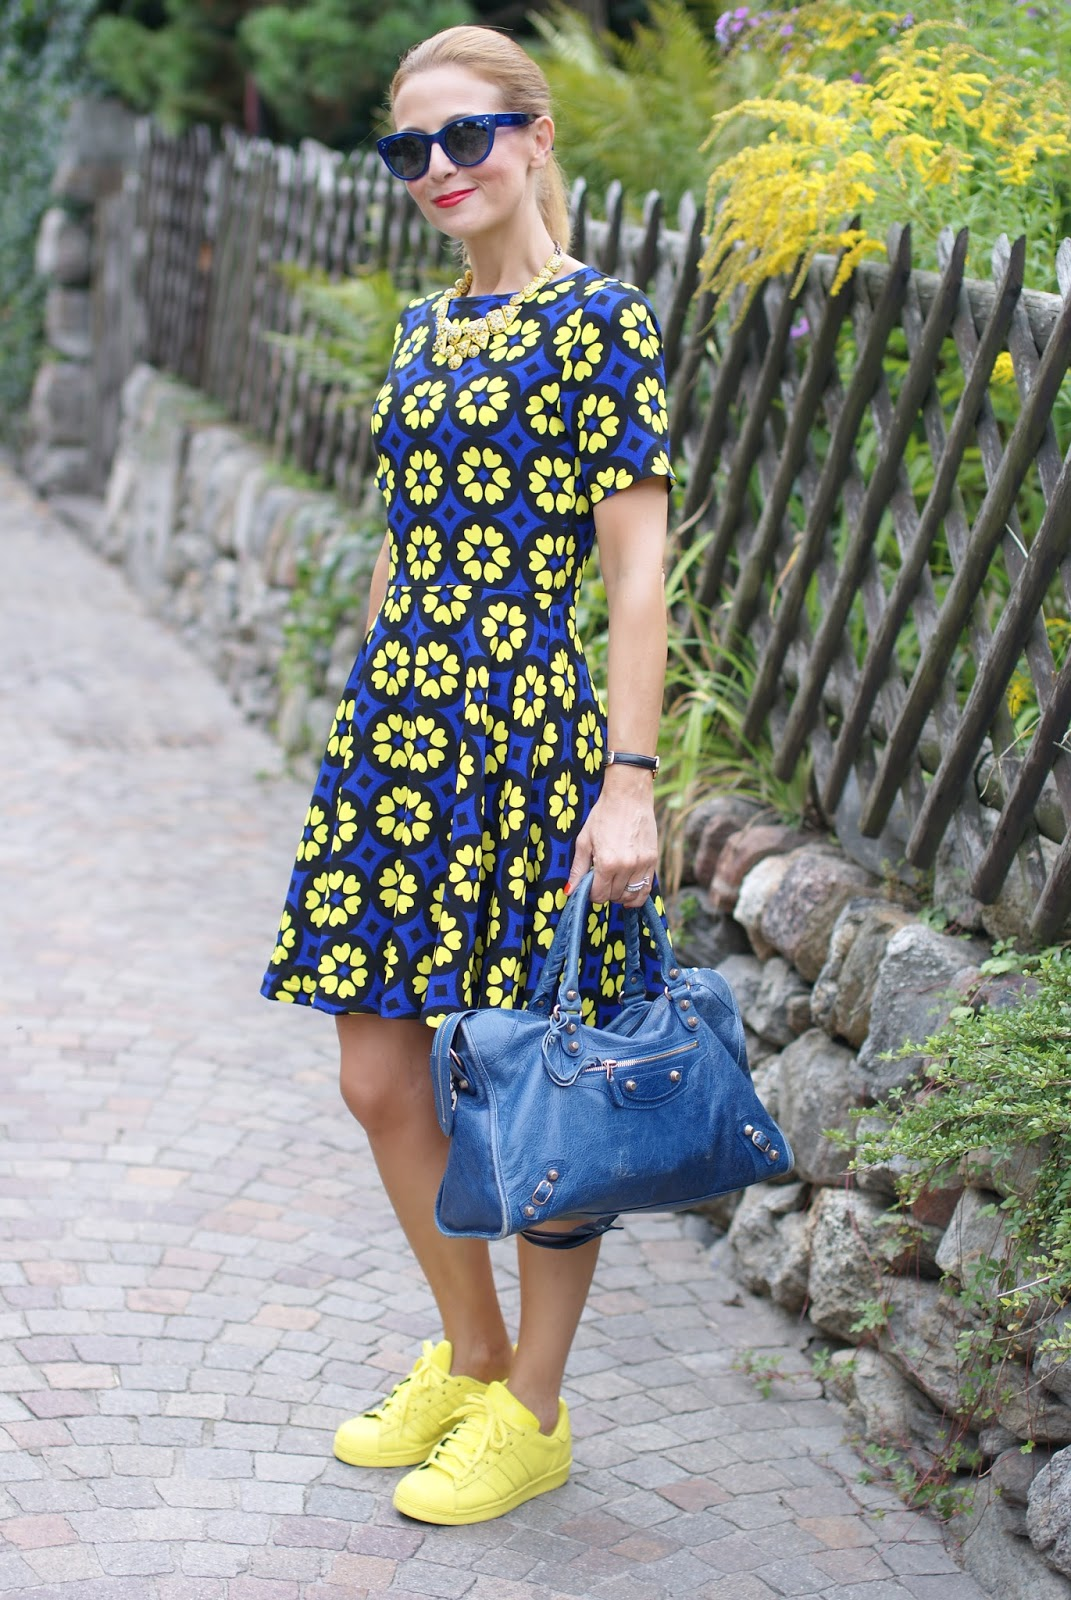 Girly dress with yellow daisies and adidas supercolor yellow on Fashion and Cookies fashion blog